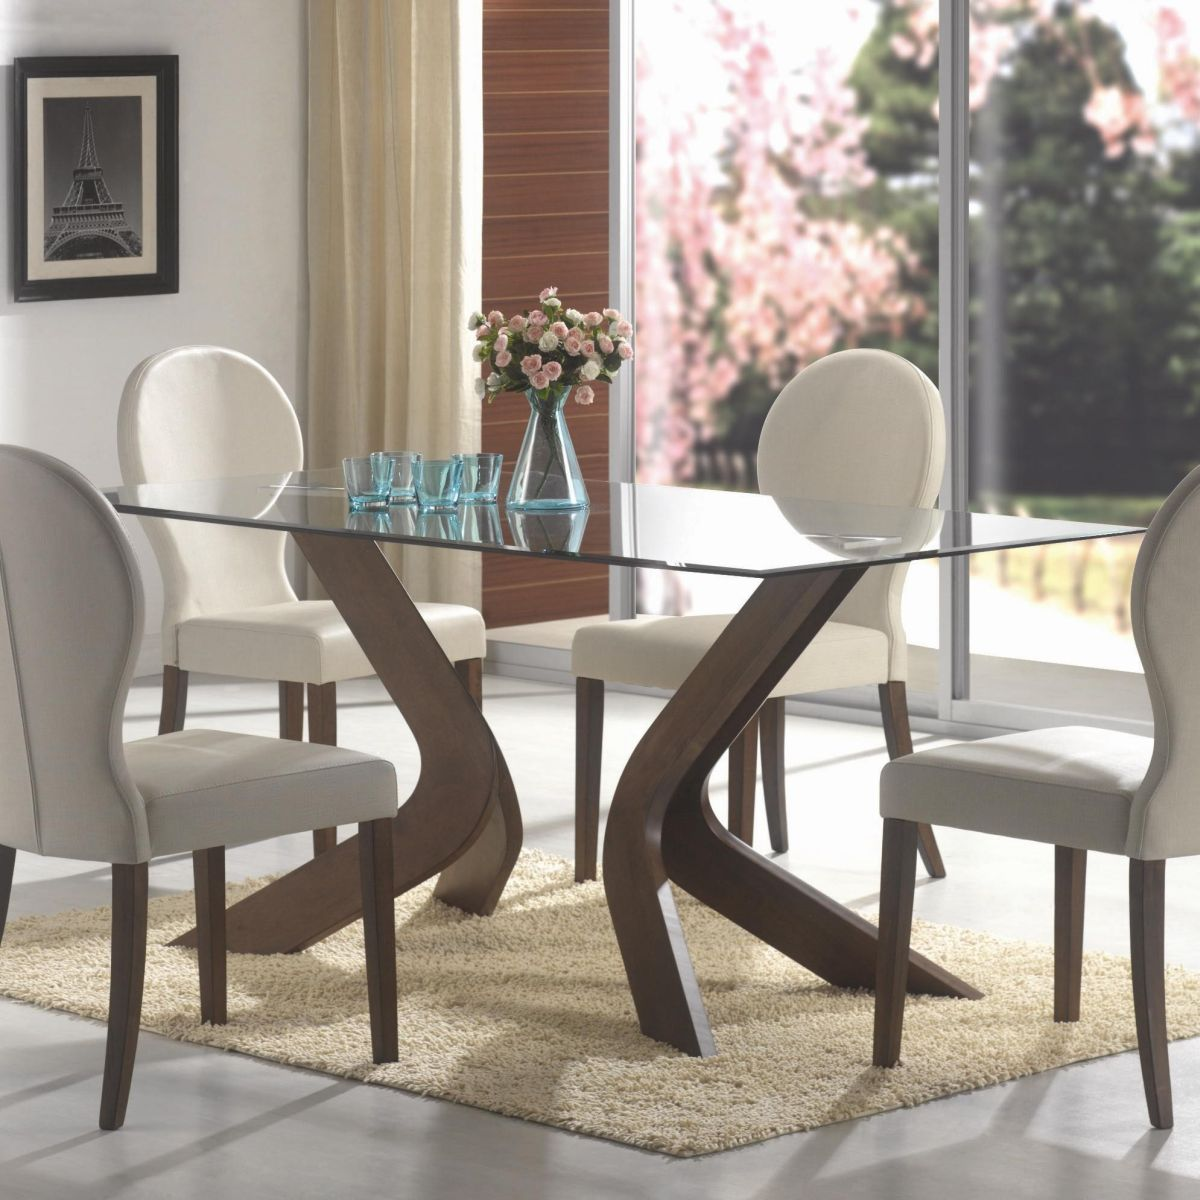 beautiful of inspirational chair modern dining pictures table and ultra kitchen chairs